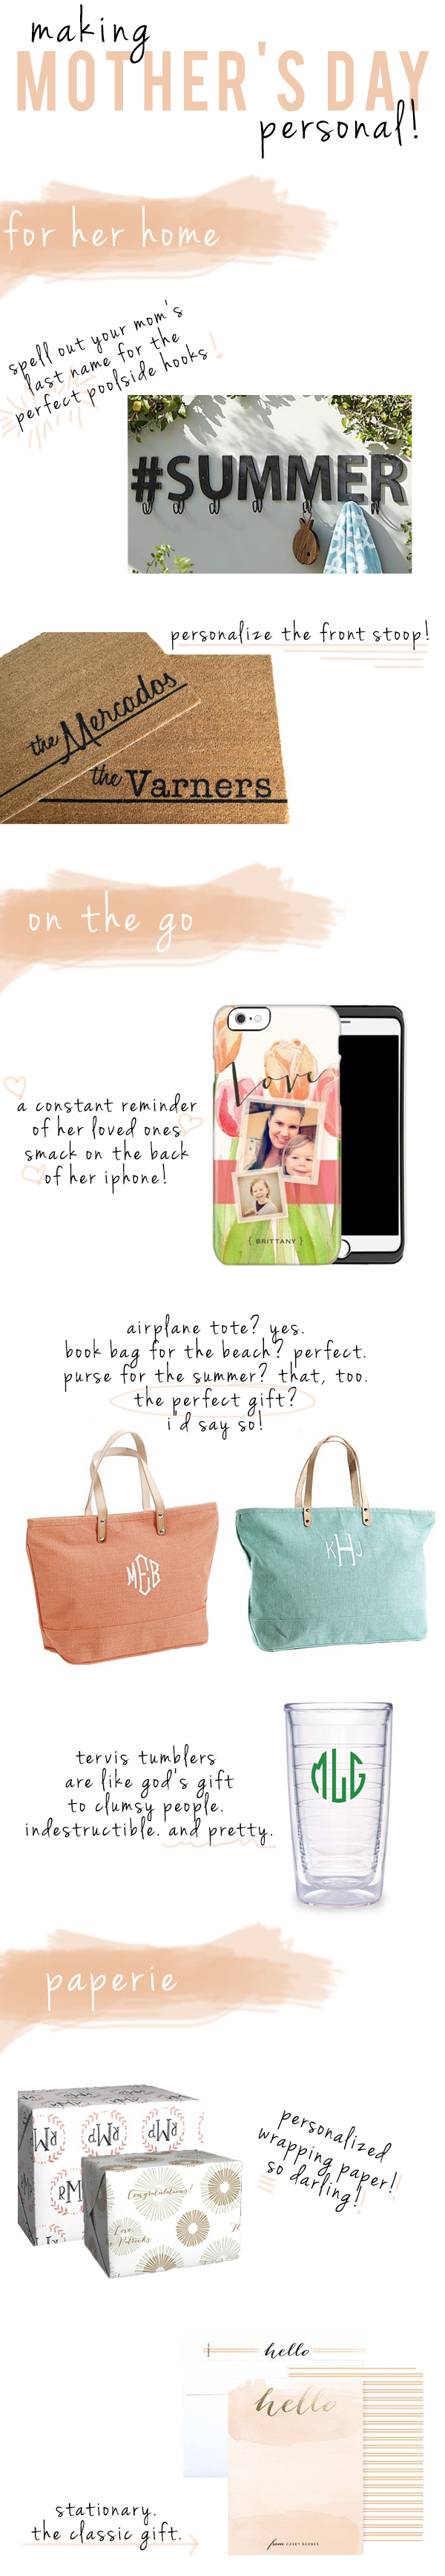 mother's day 2015 personalized gift guide